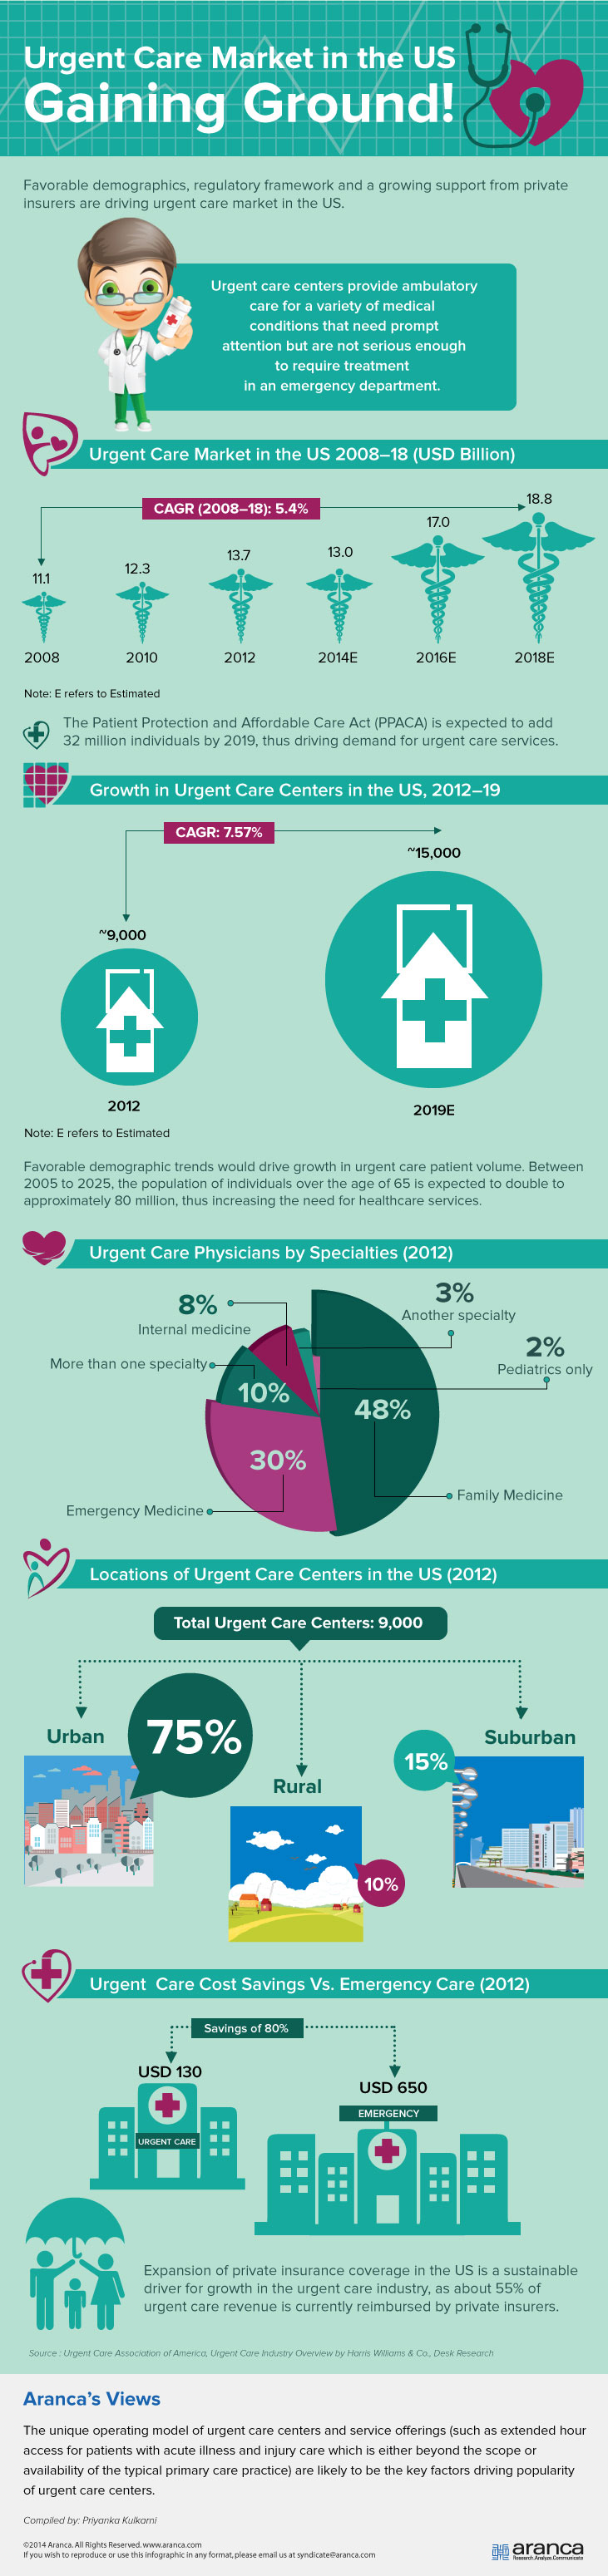 Urgent Care Market - US